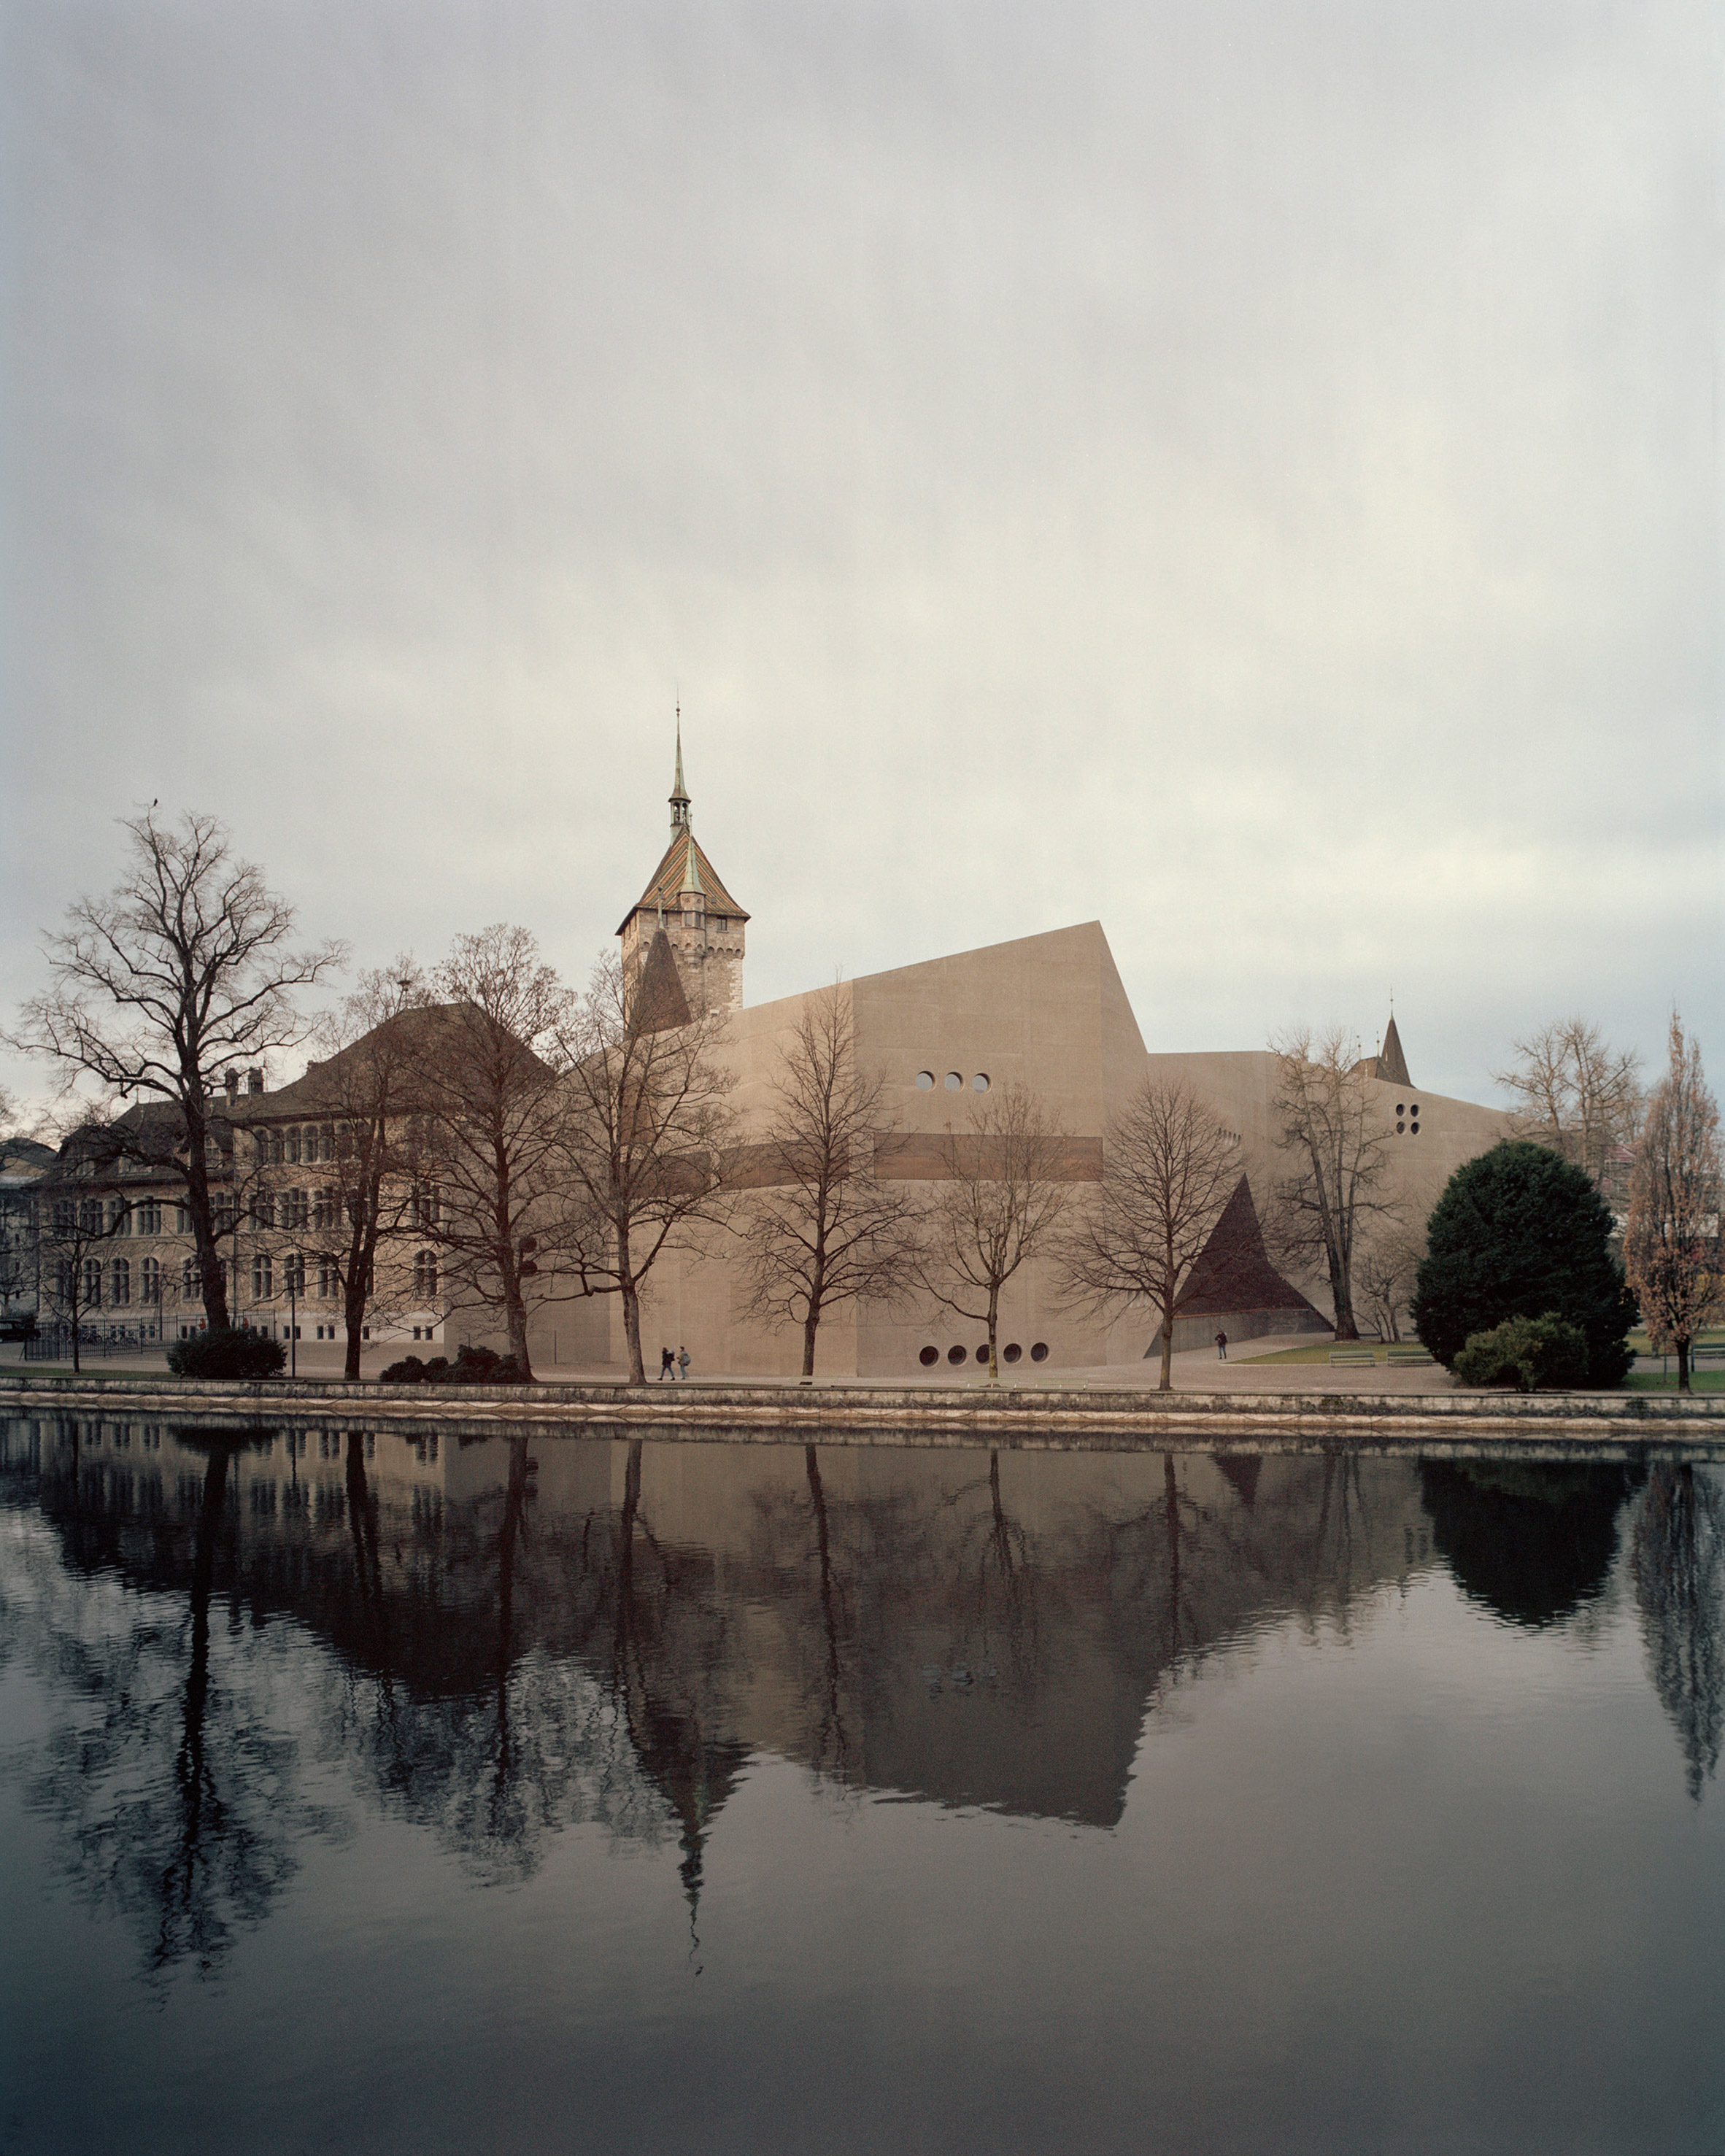 Christ & Gantenbein's concrete extension to National Museum Zurich photographed by Rory Gardiner